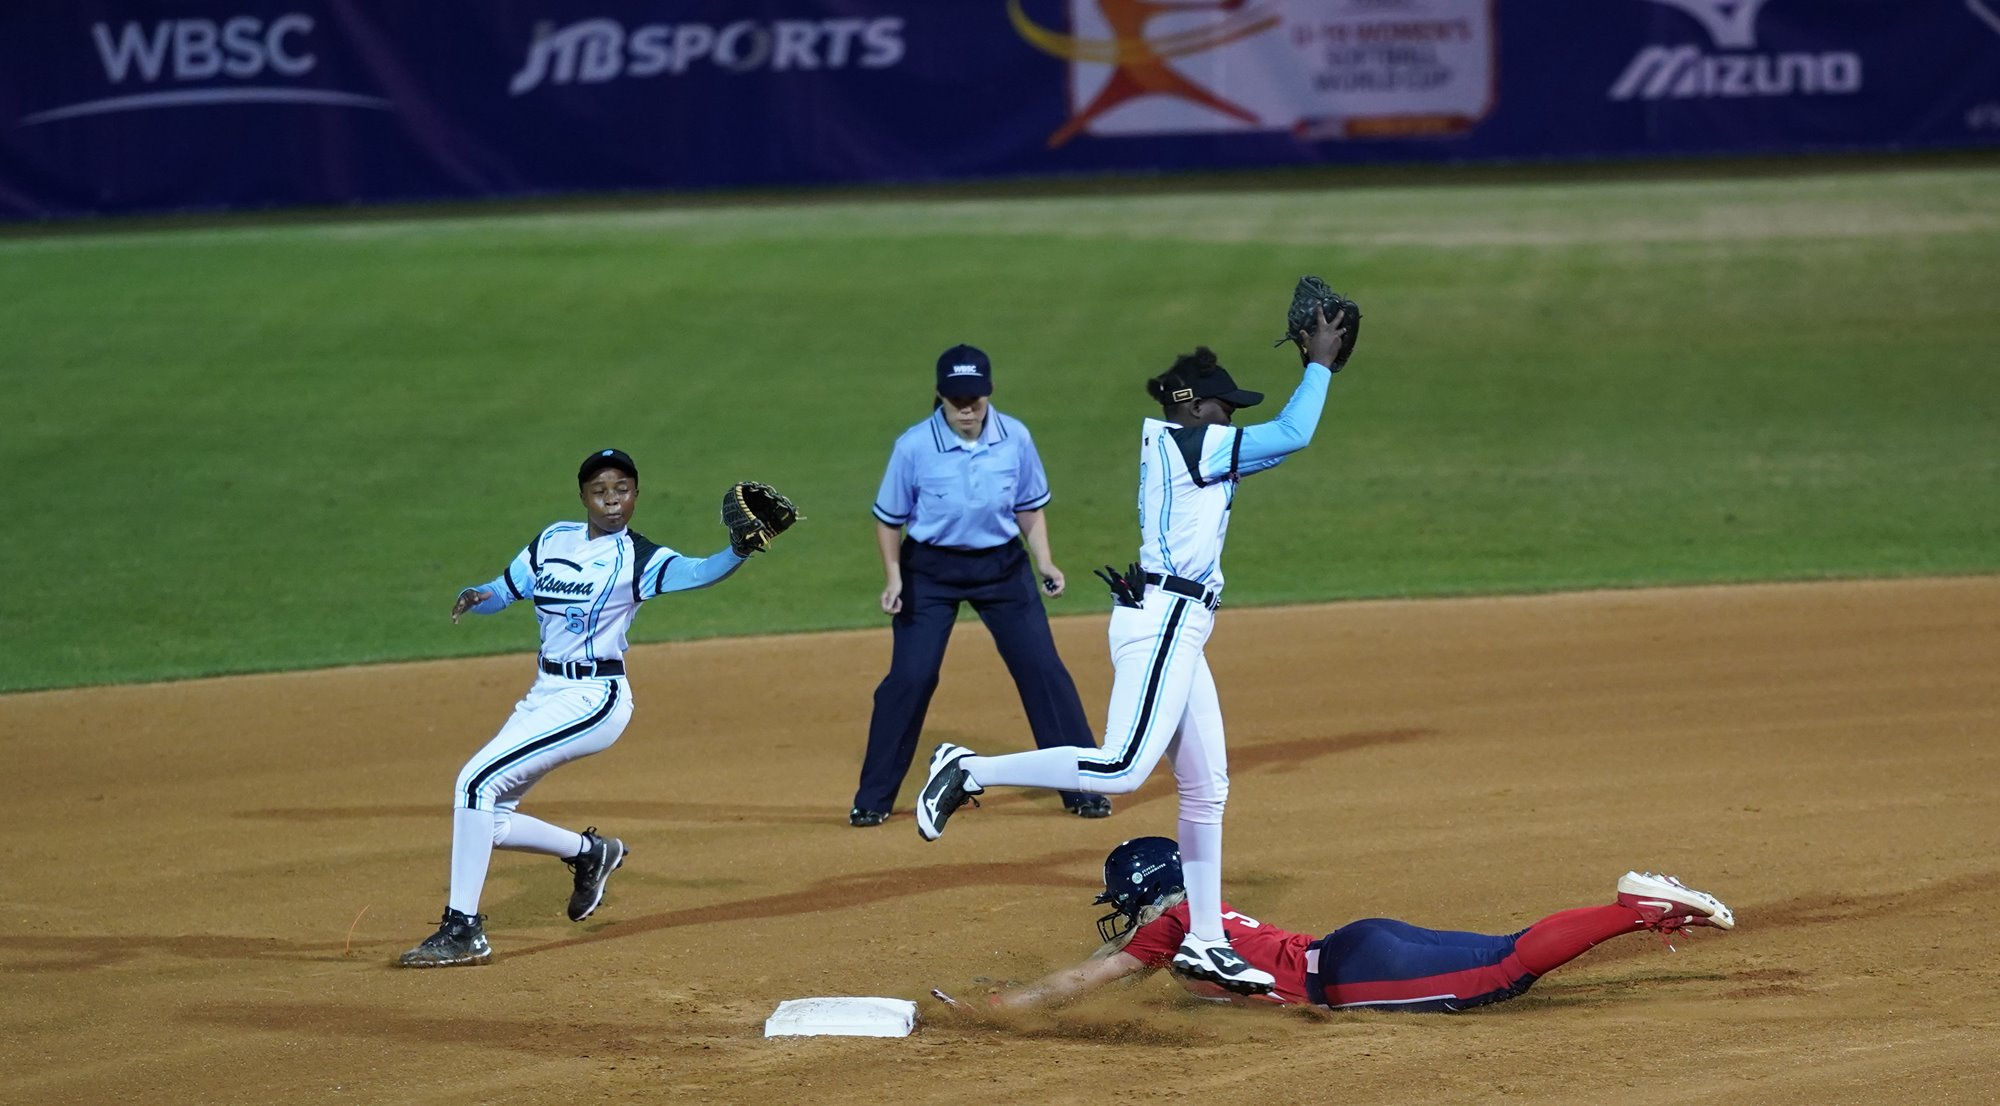 The USA needed only three innings to outscore Botswana